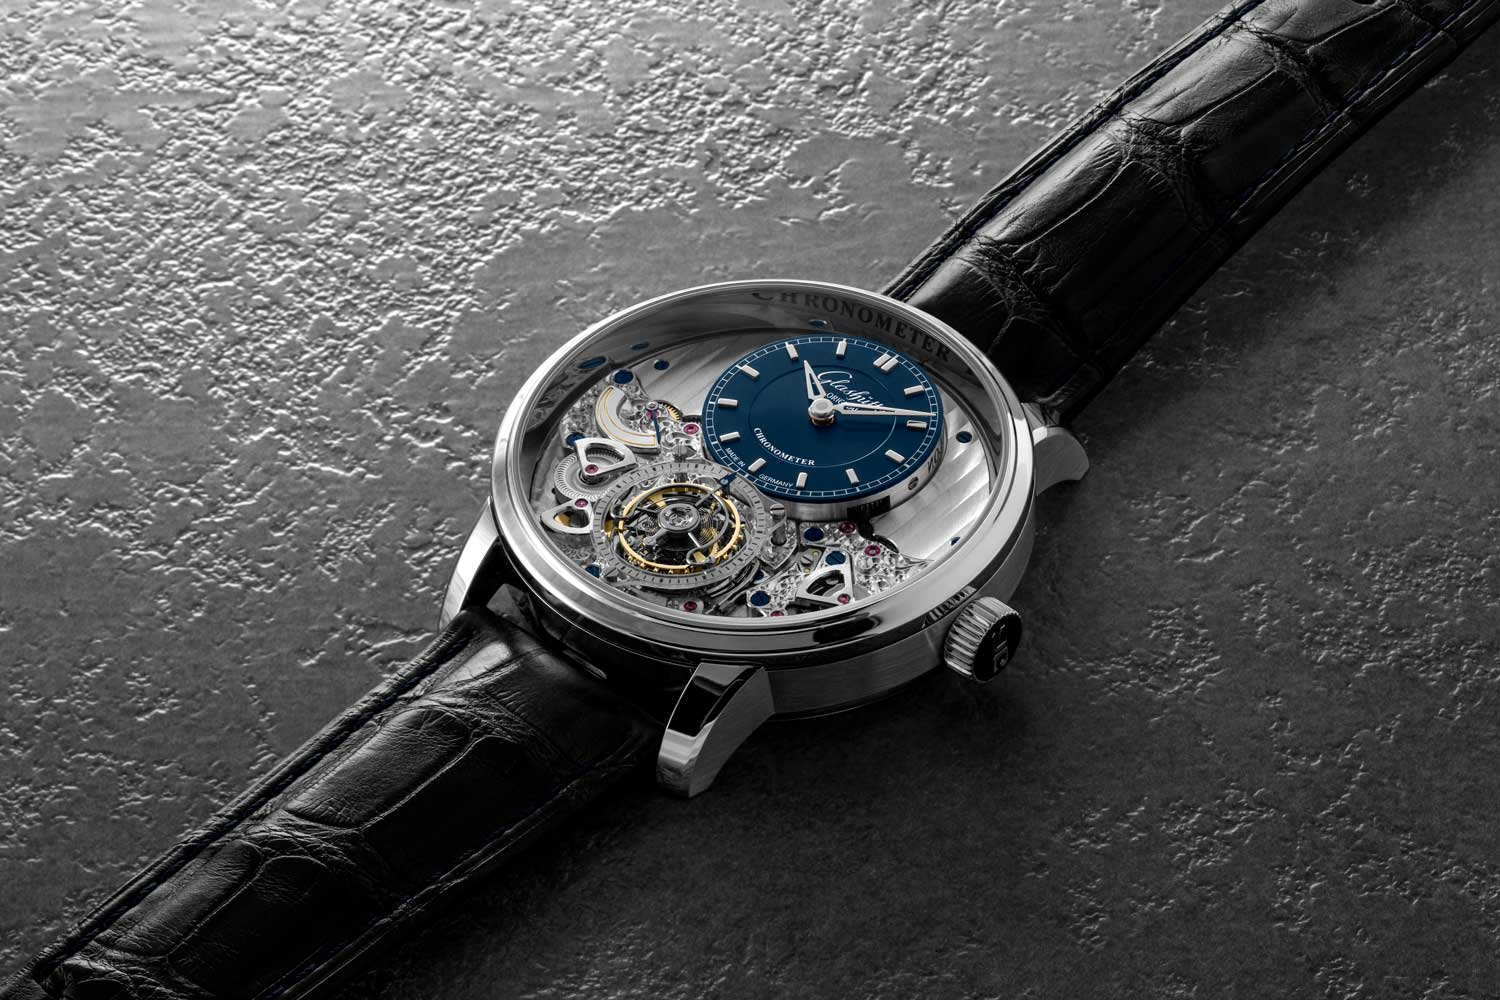 Glashütte Original Senator Chronometer Tourbillon (©Revolution)